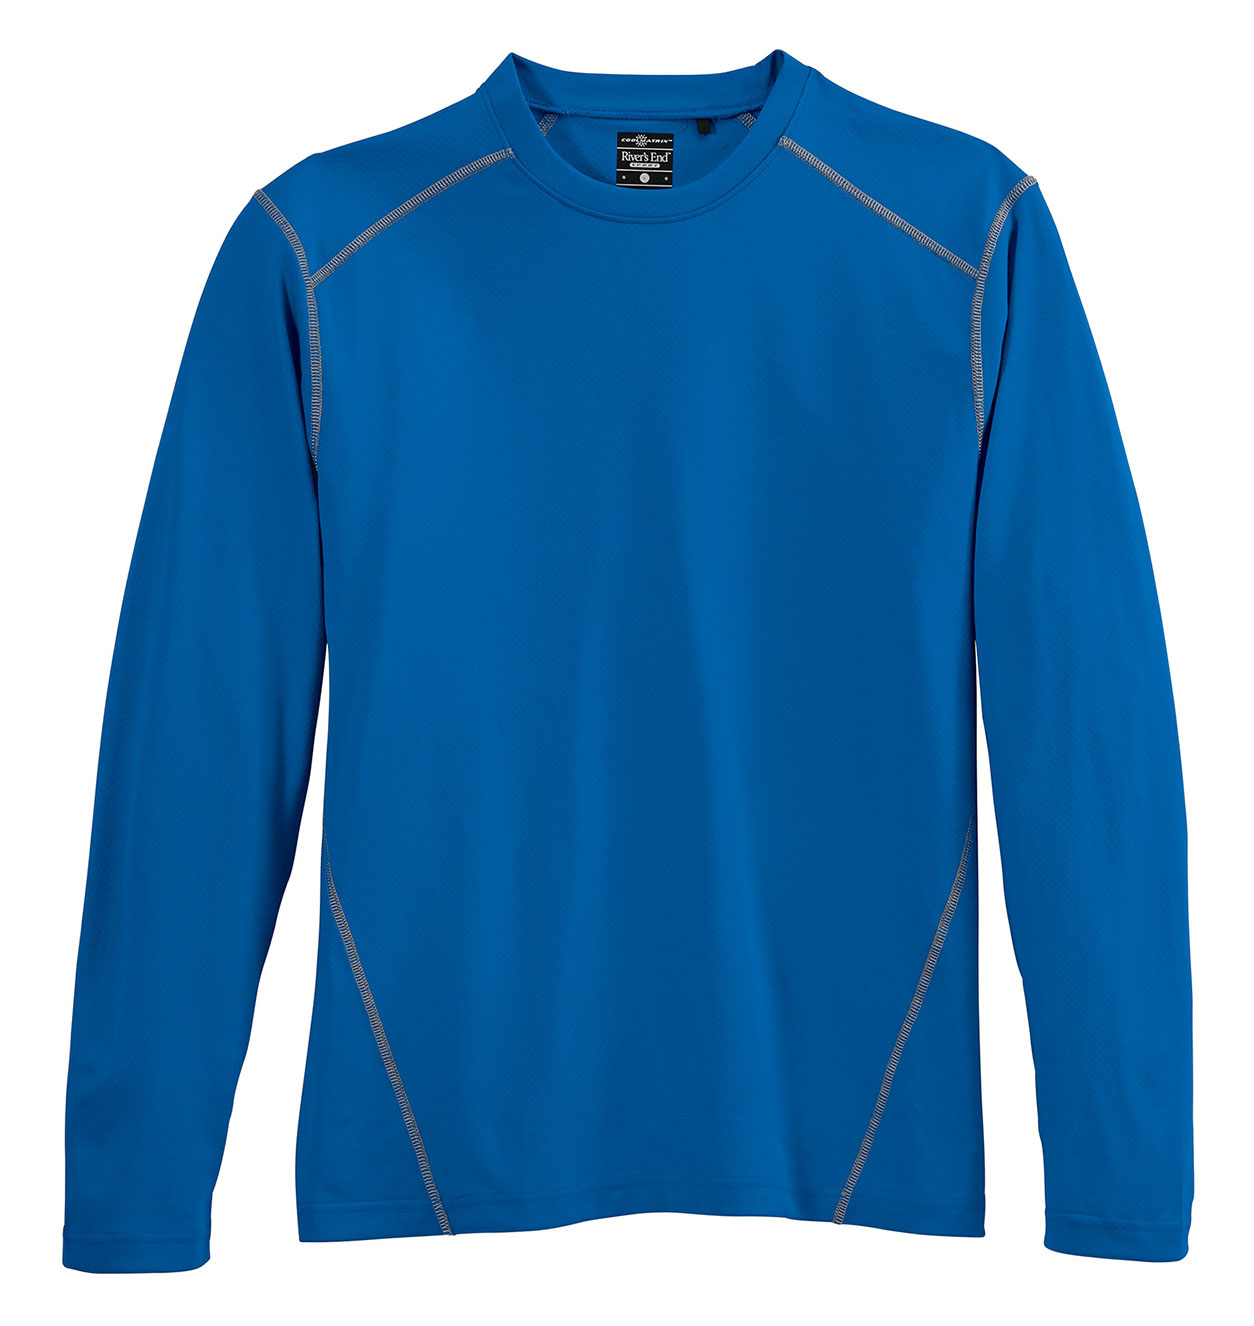 Mens Contrast Stitch Long Sleeve Crewneck Tee